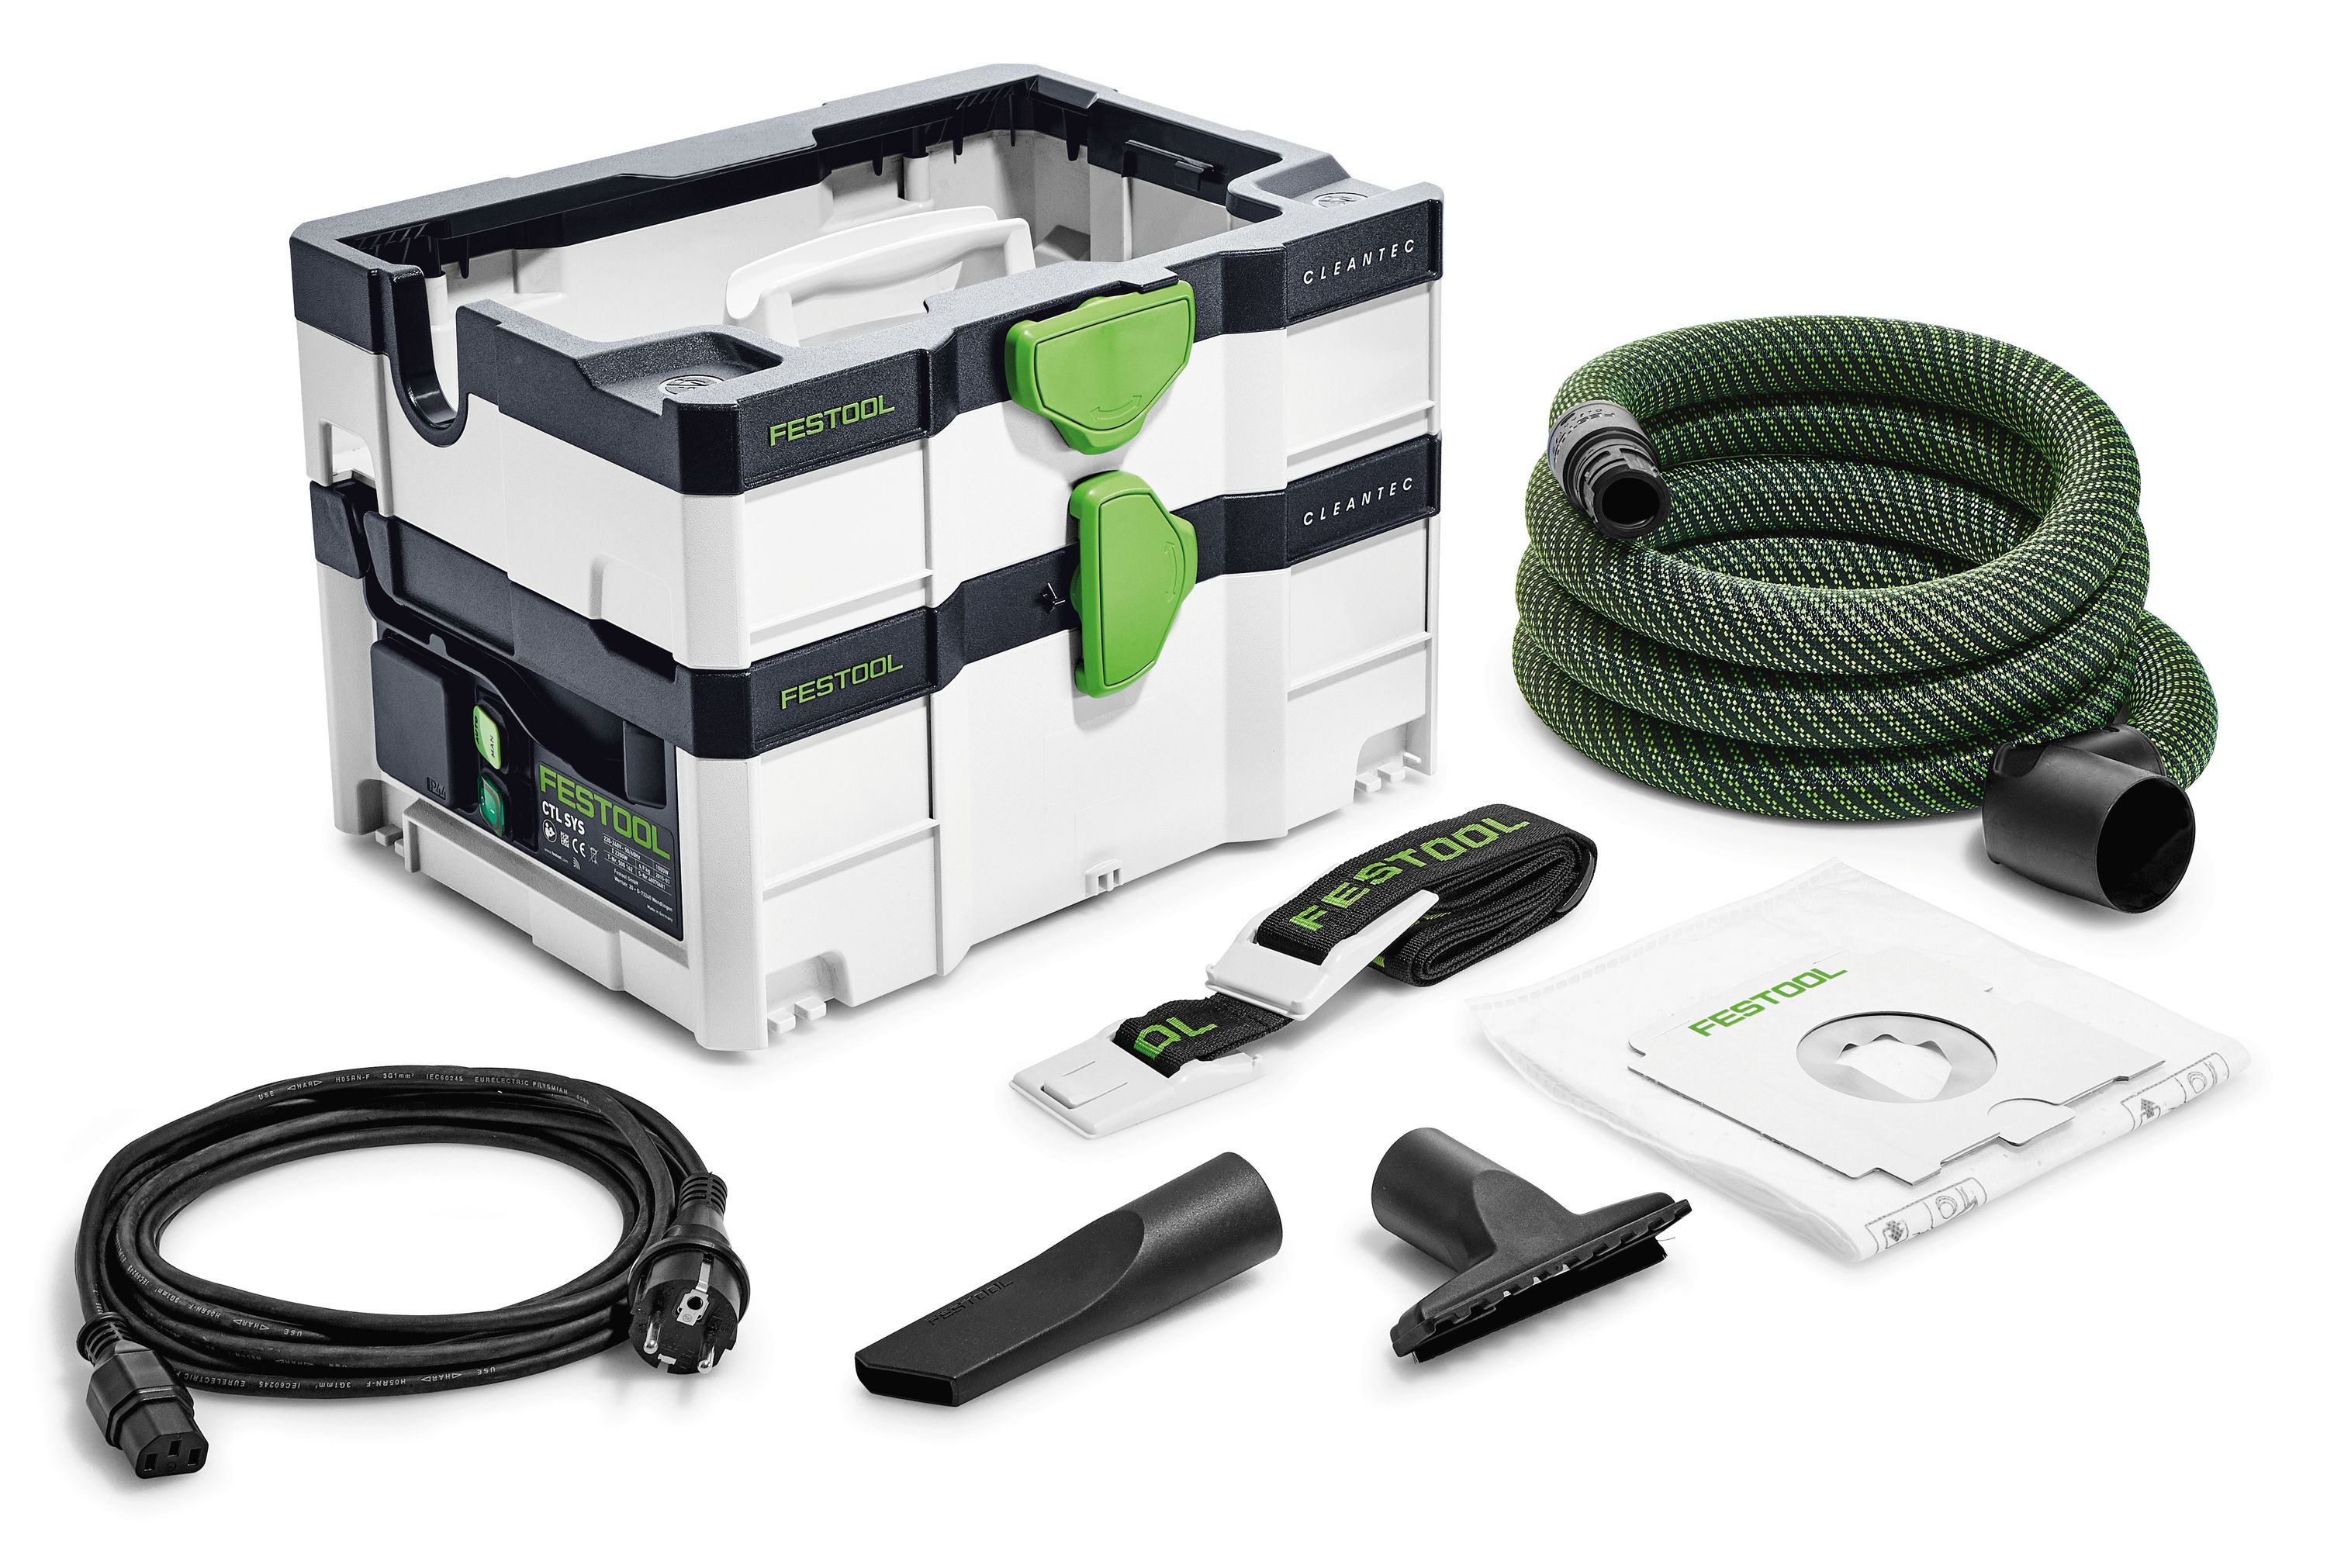 festool absaugmobil ctl sys cleantec 575279 ebay. Black Bedroom Furniture Sets. Home Design Ideas